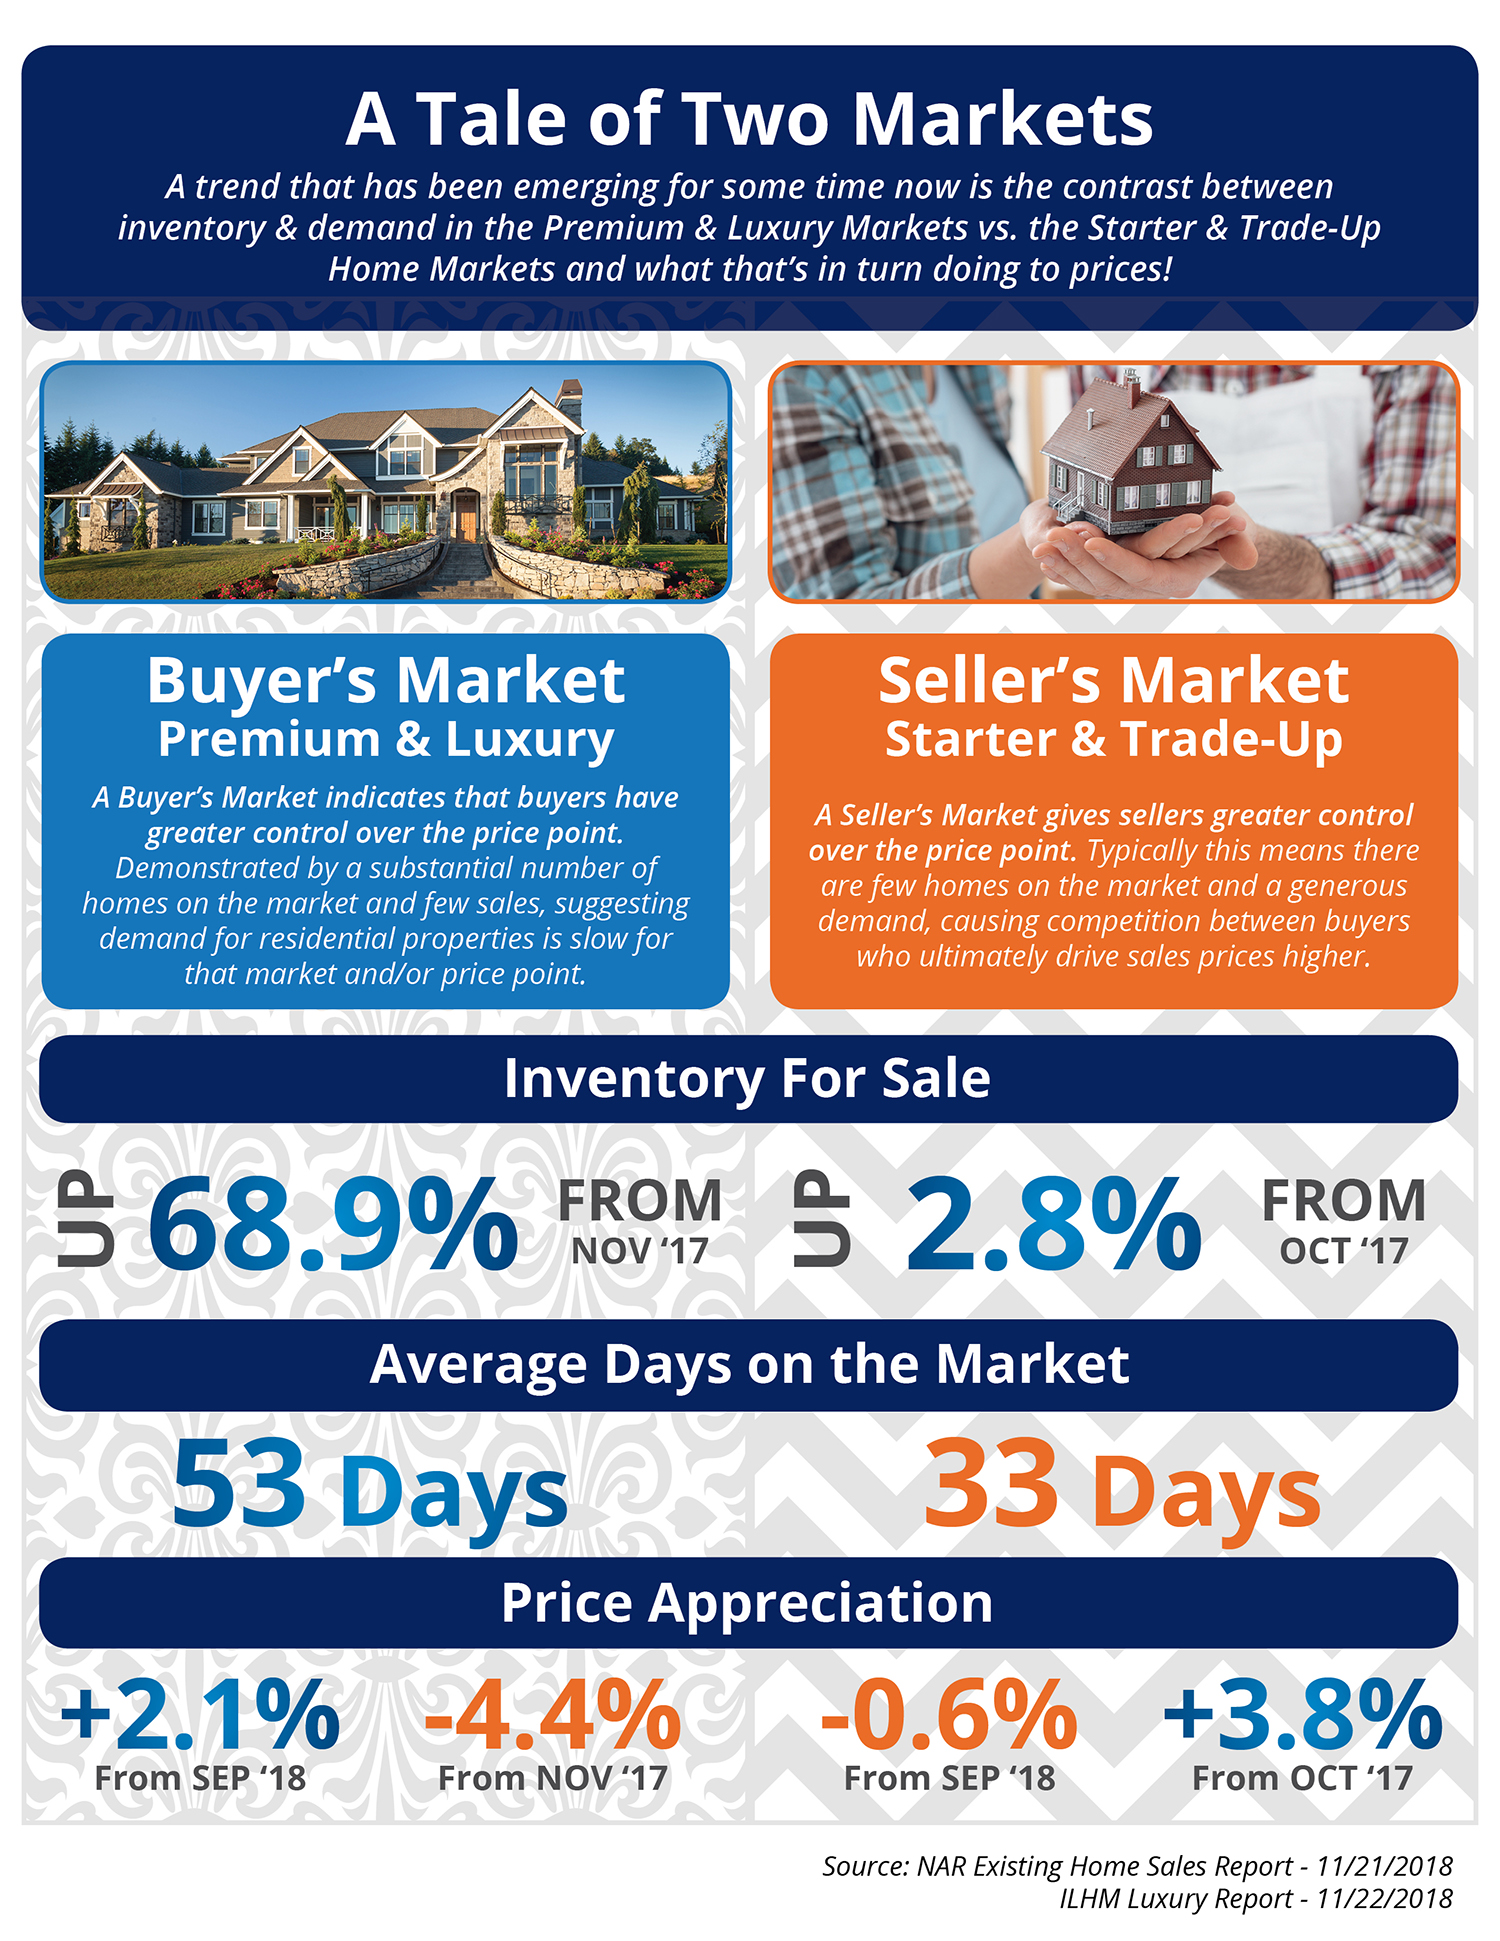 Tale of Two Markets - Winfield Estates